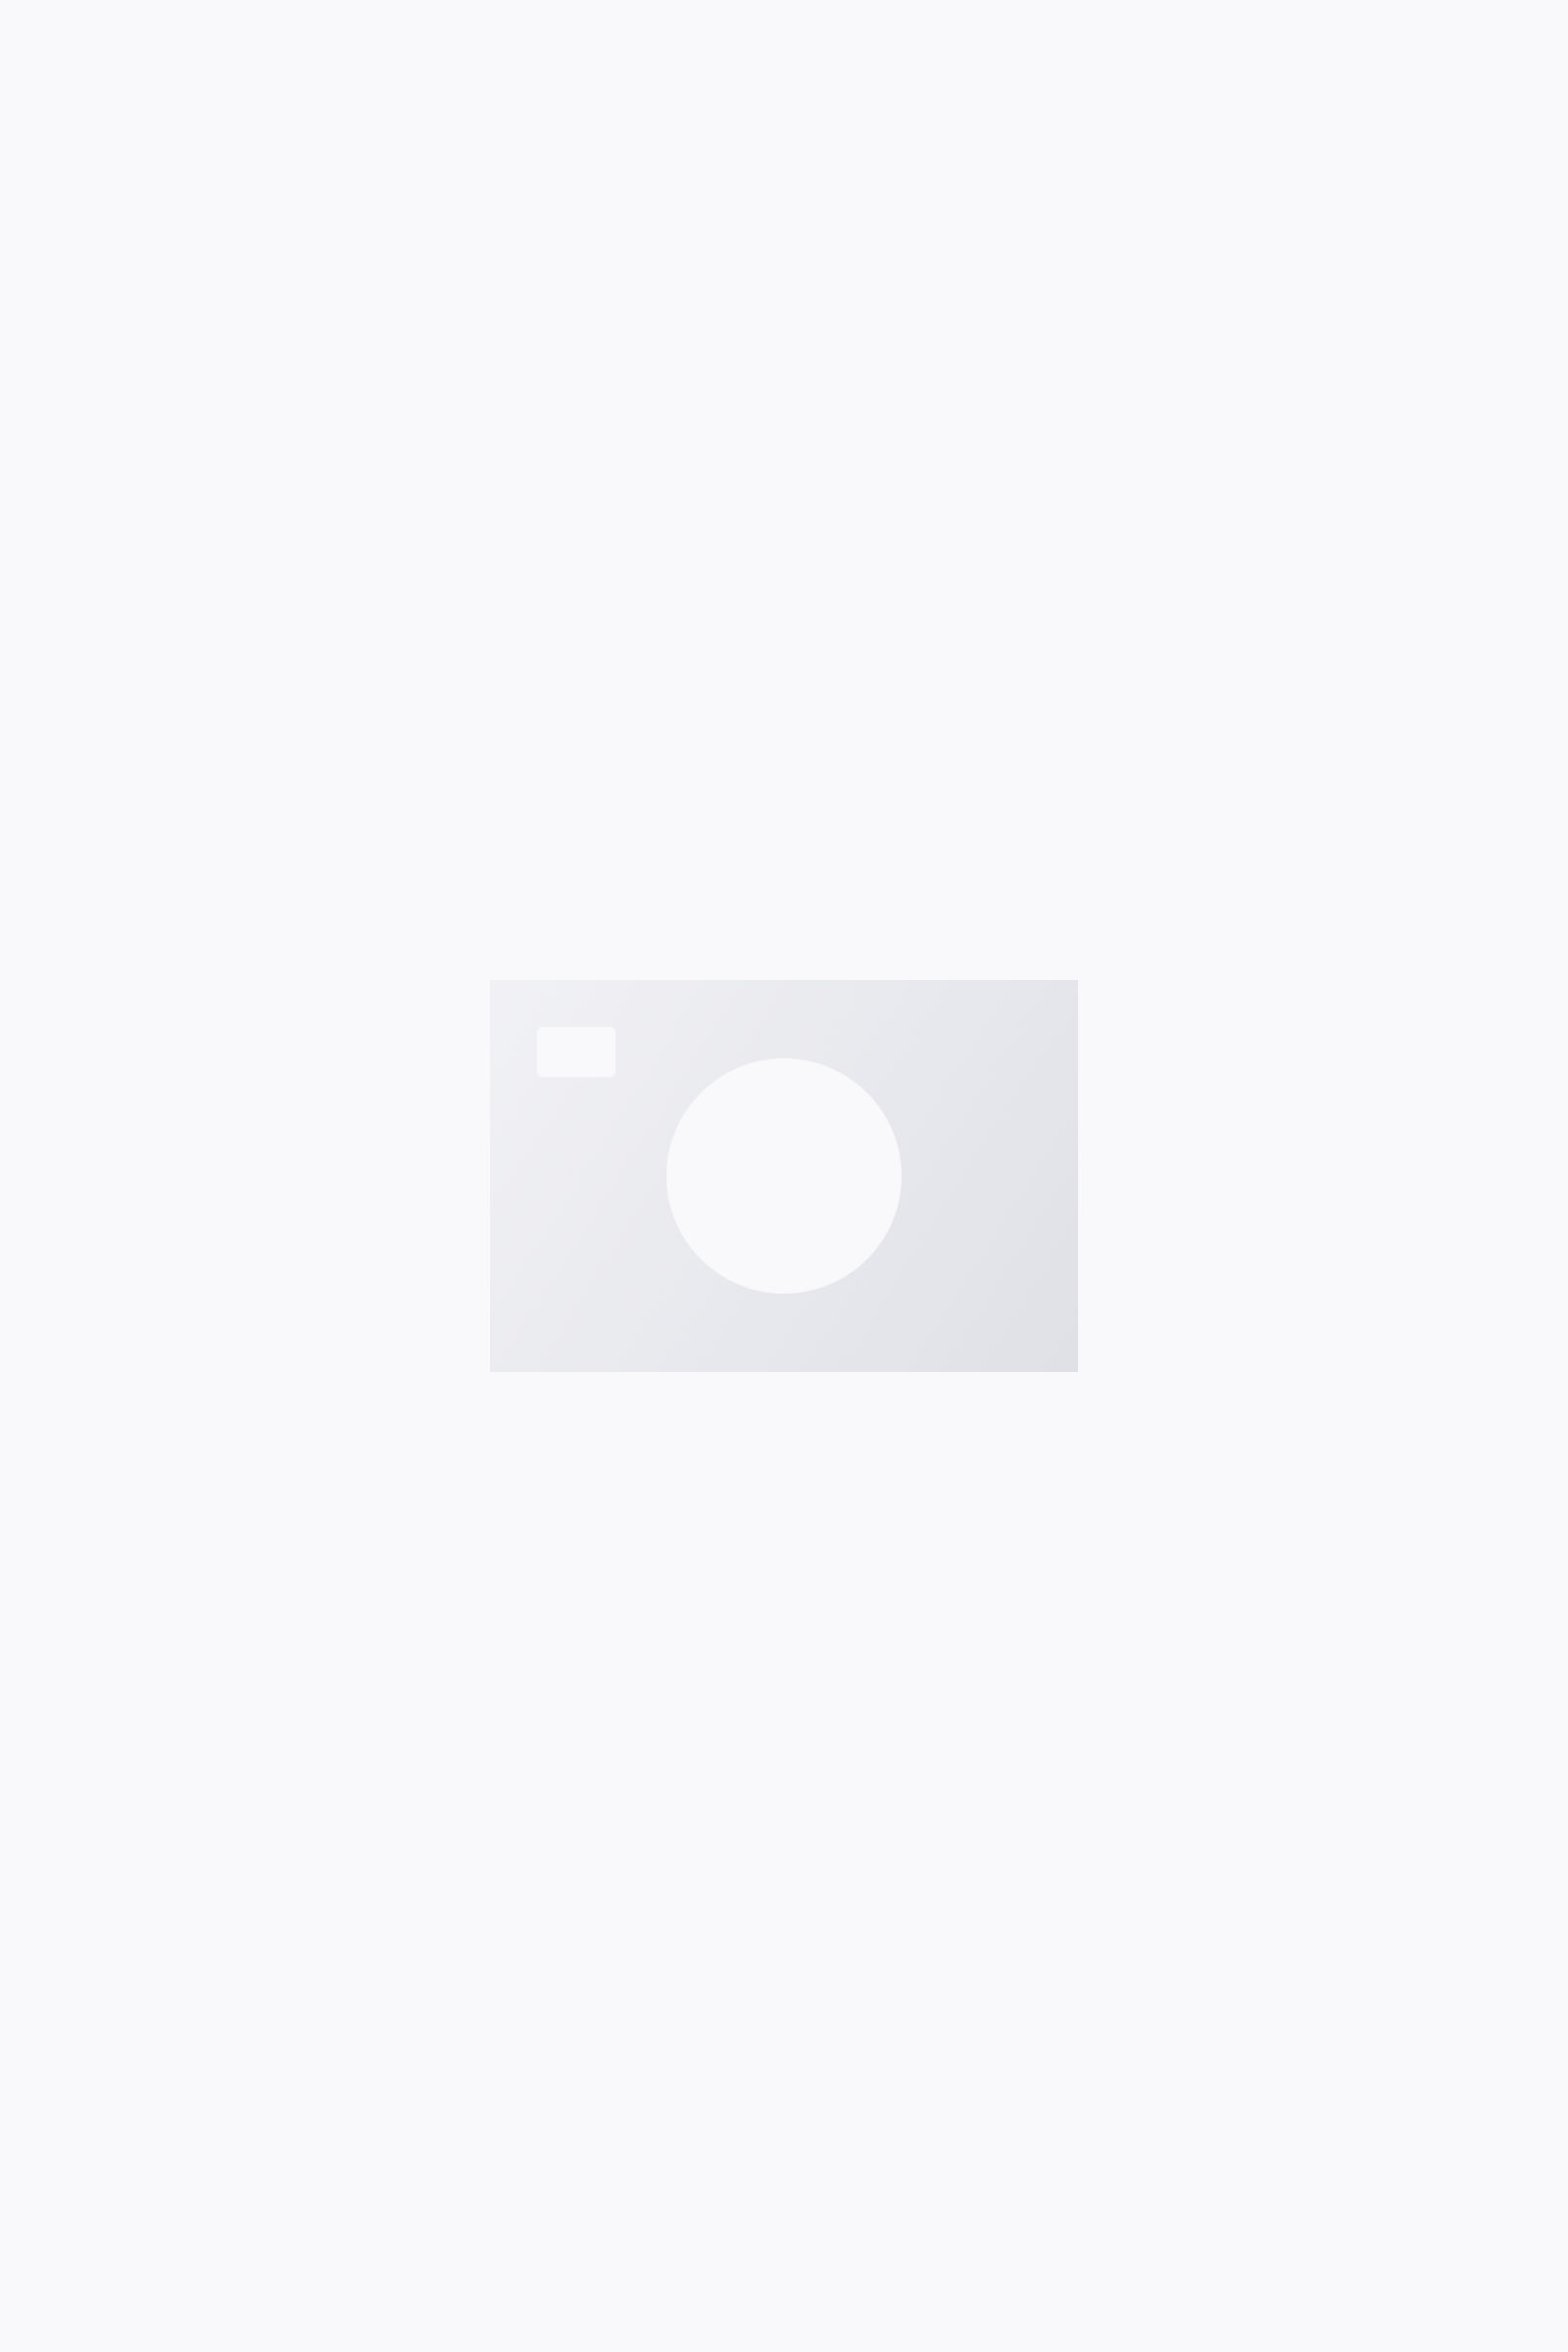 COS PATCH POCKET T-SHIRT,neon green